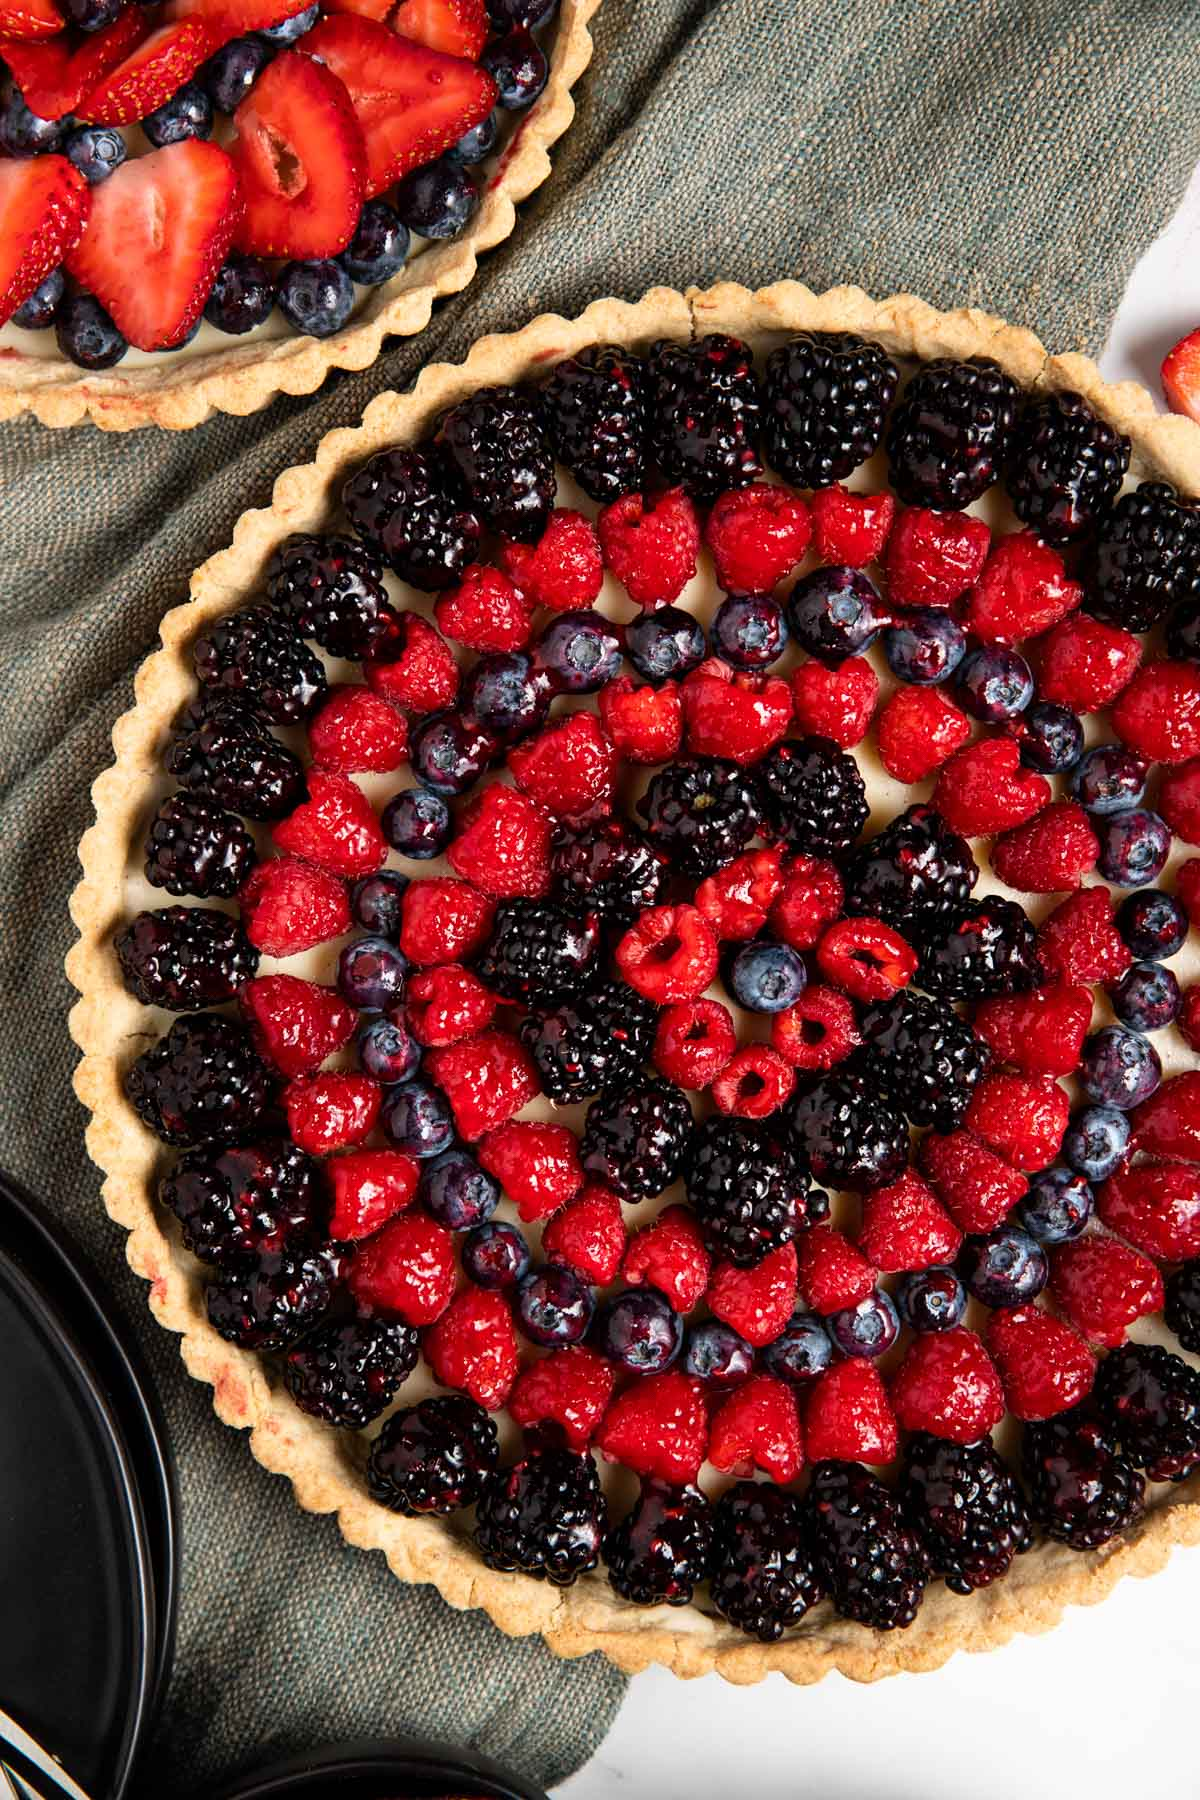 featured image of white chocolate berry tarts with different berry options. Large tart featuring circles of raspberries, and blackberries, smaller tart featuring spirals of strawberries and blueberries